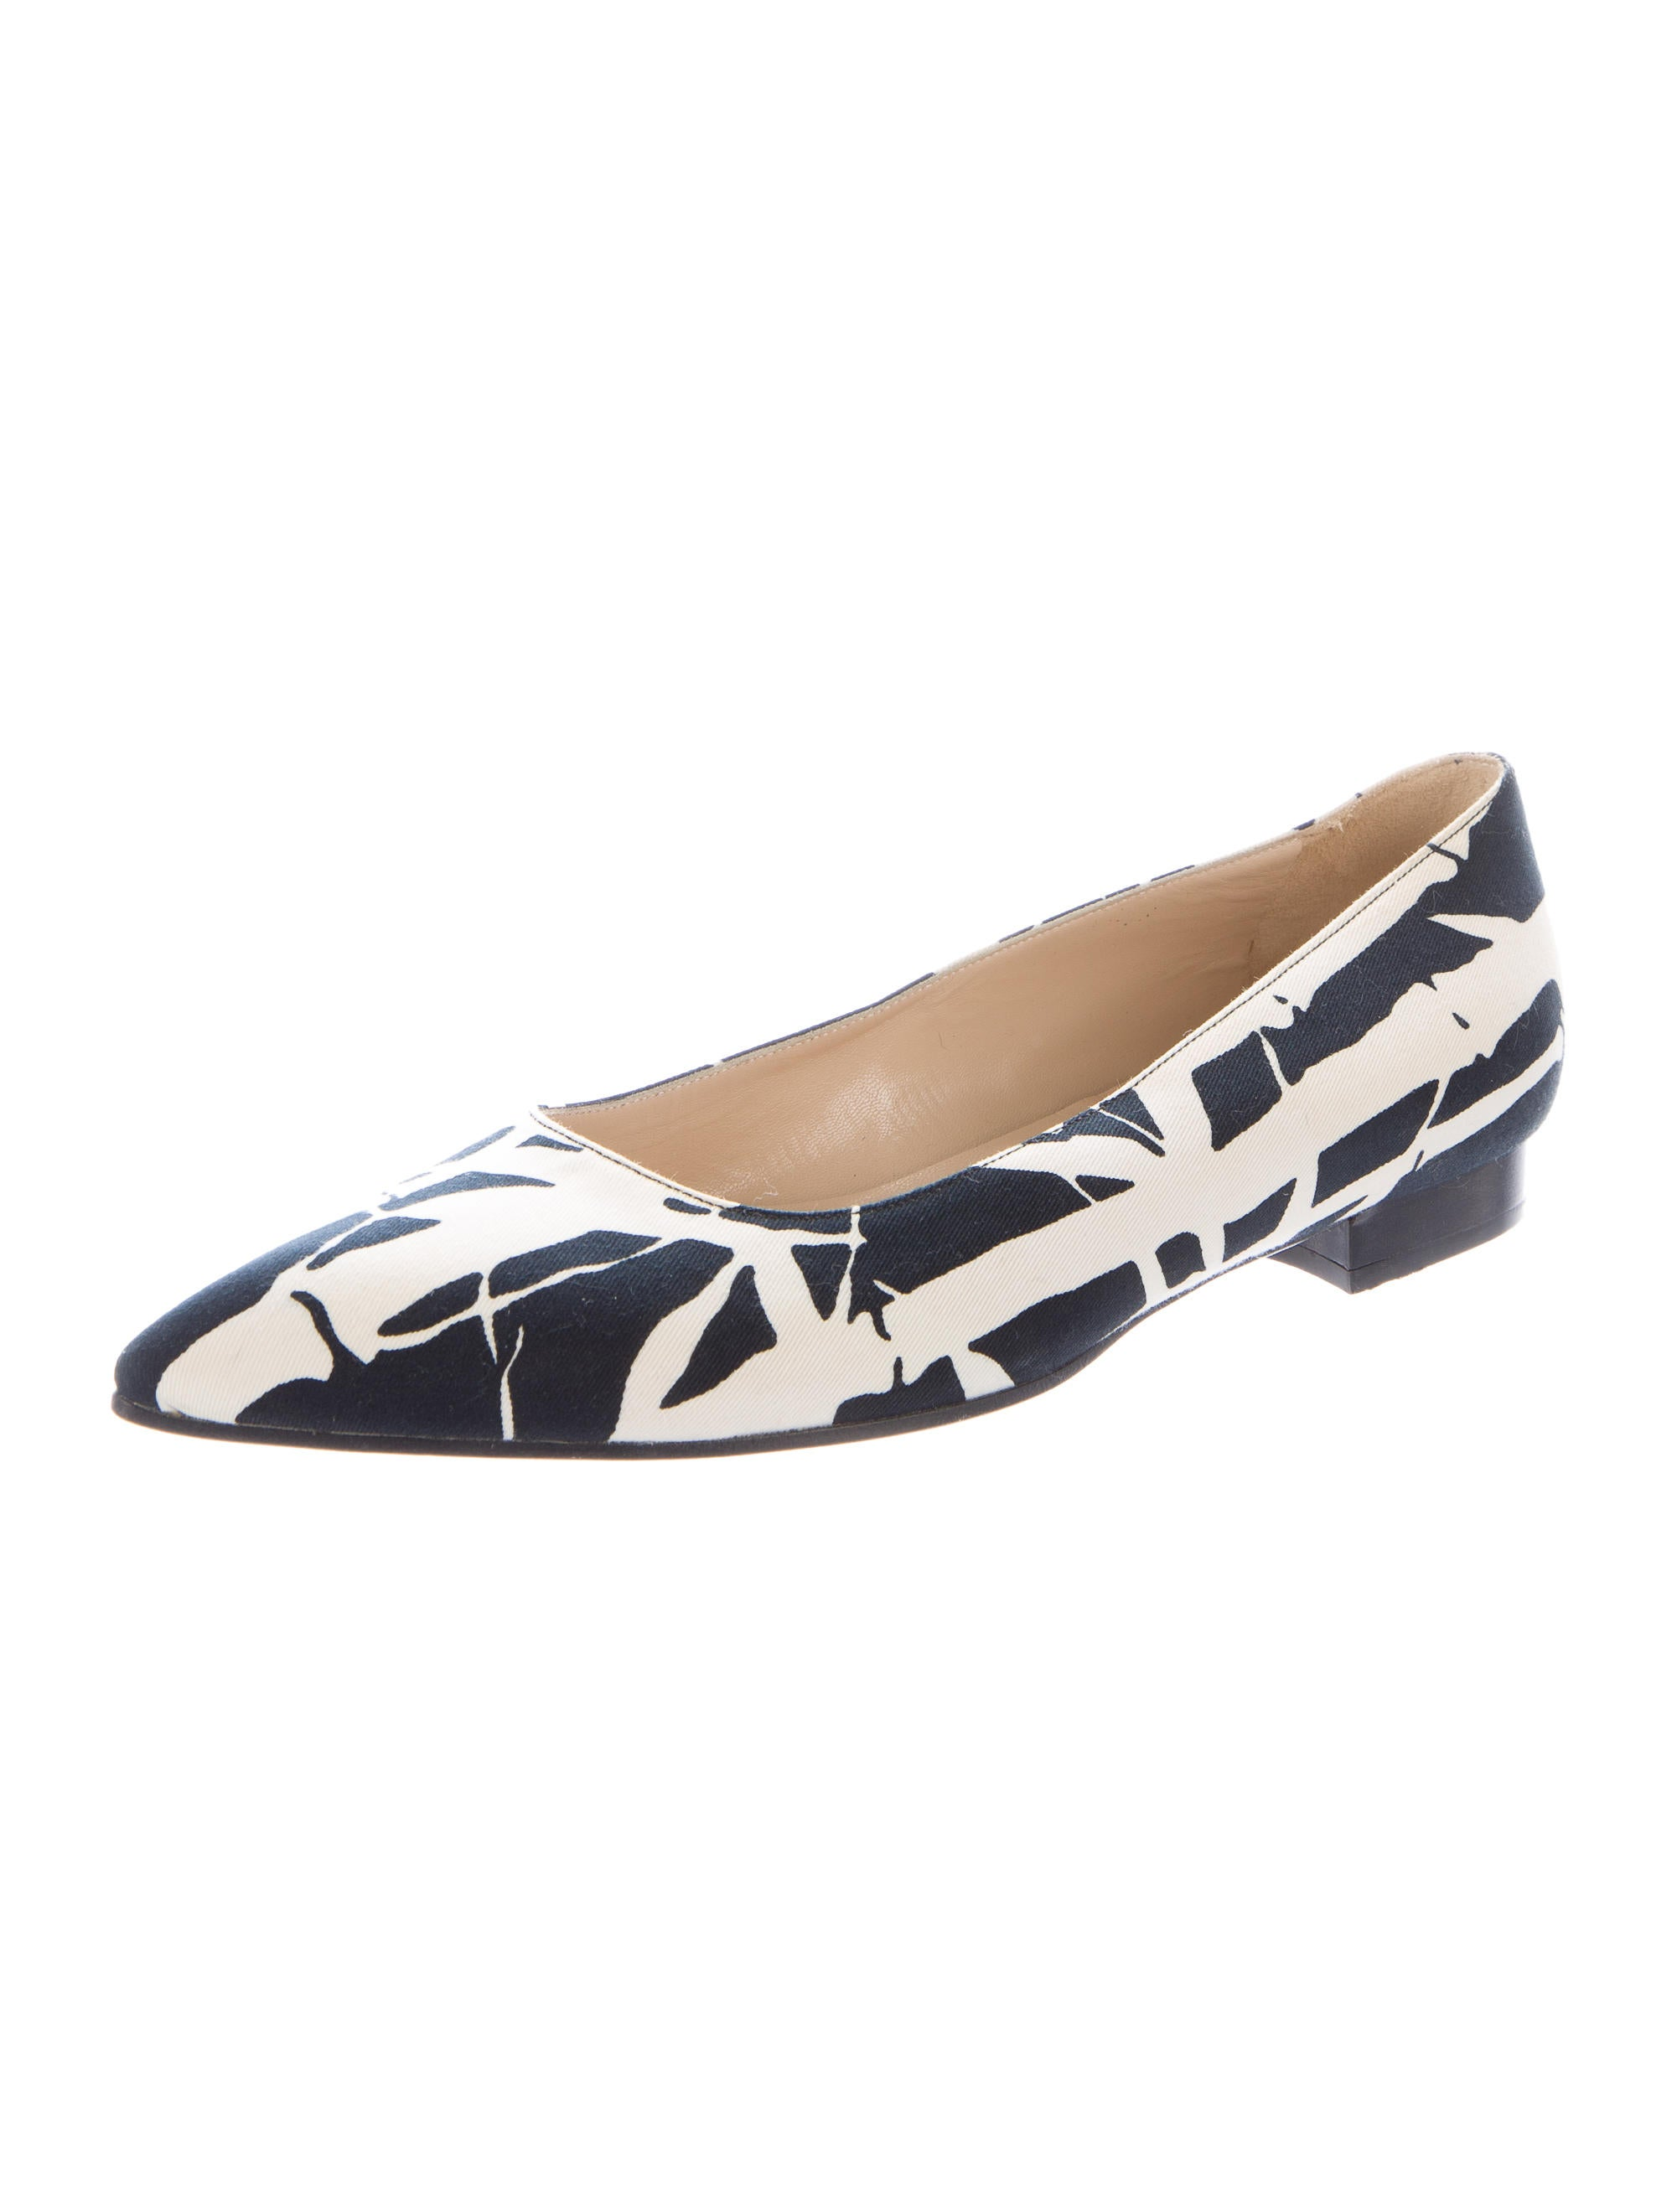 michael kors printed canvas flats shoes mic41988 the